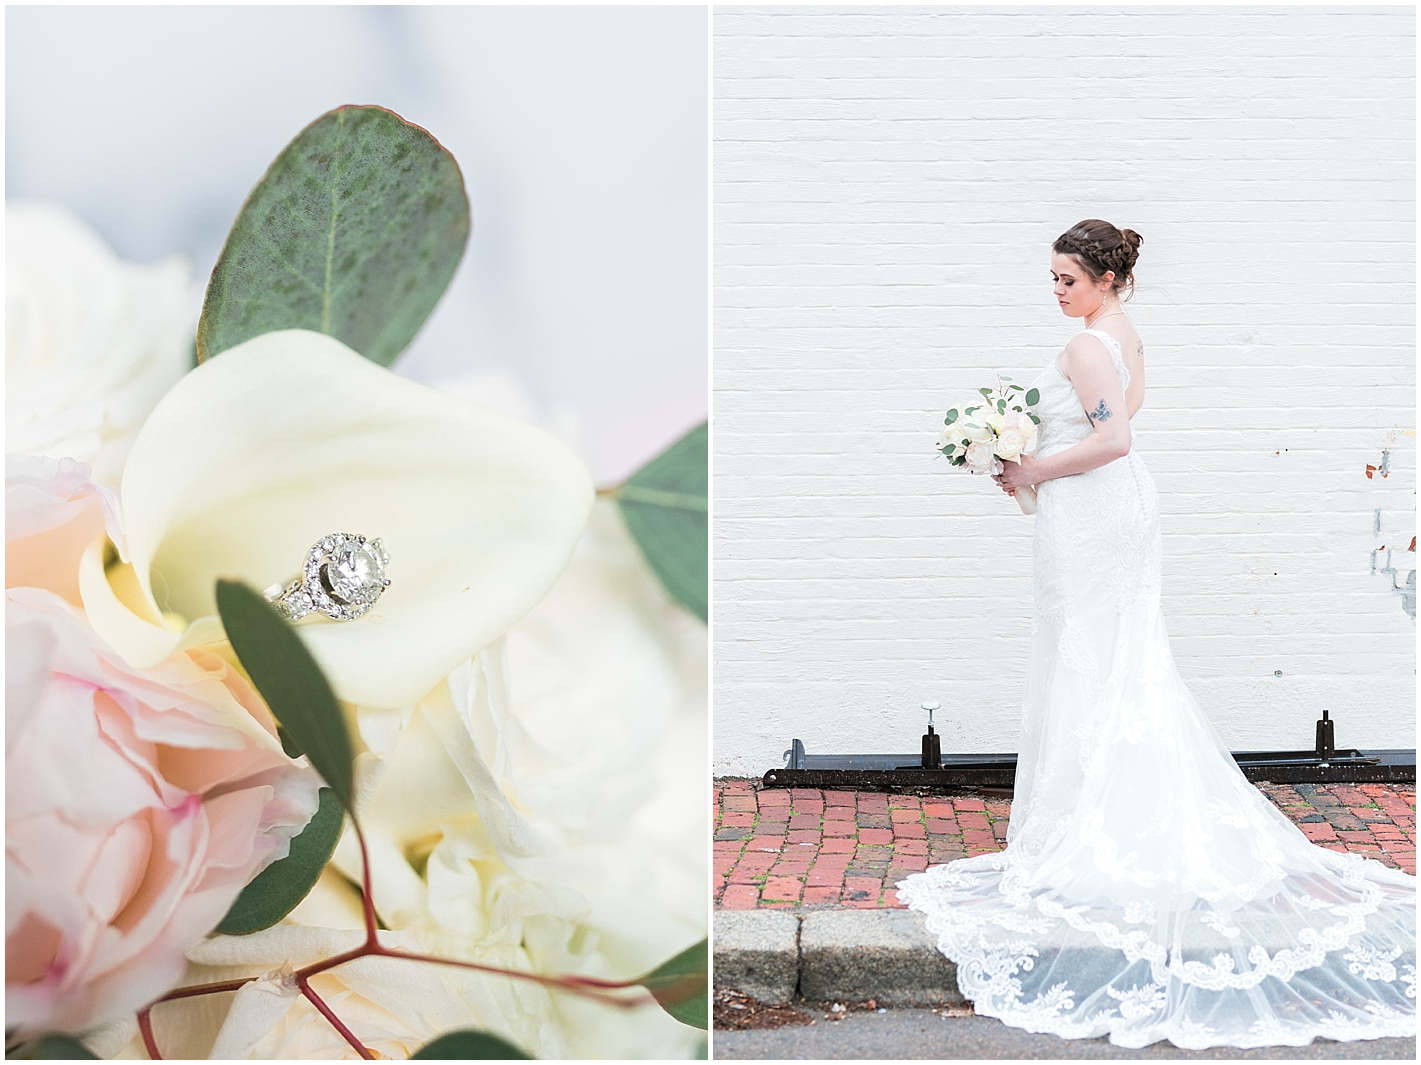 Bridal Session Photos By Alyssa Parker Photography